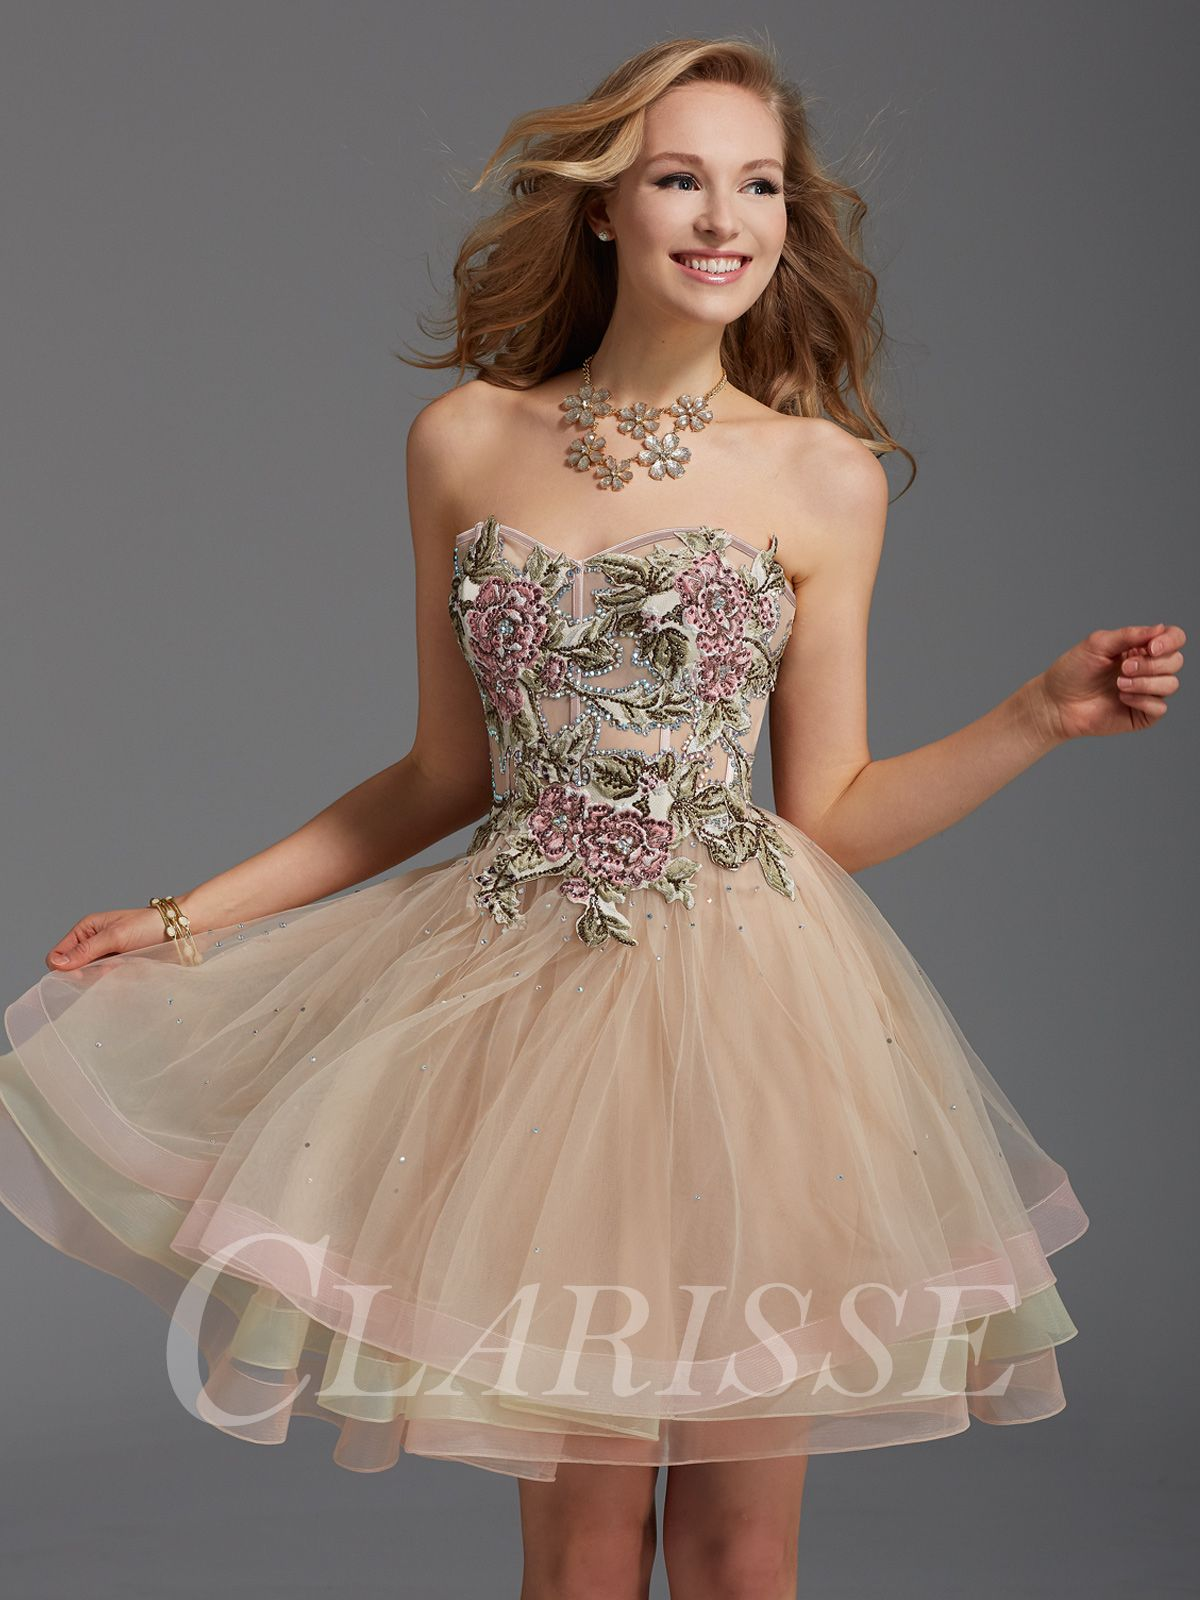 Princess homecoming dress designed by clarisse with strapless floral